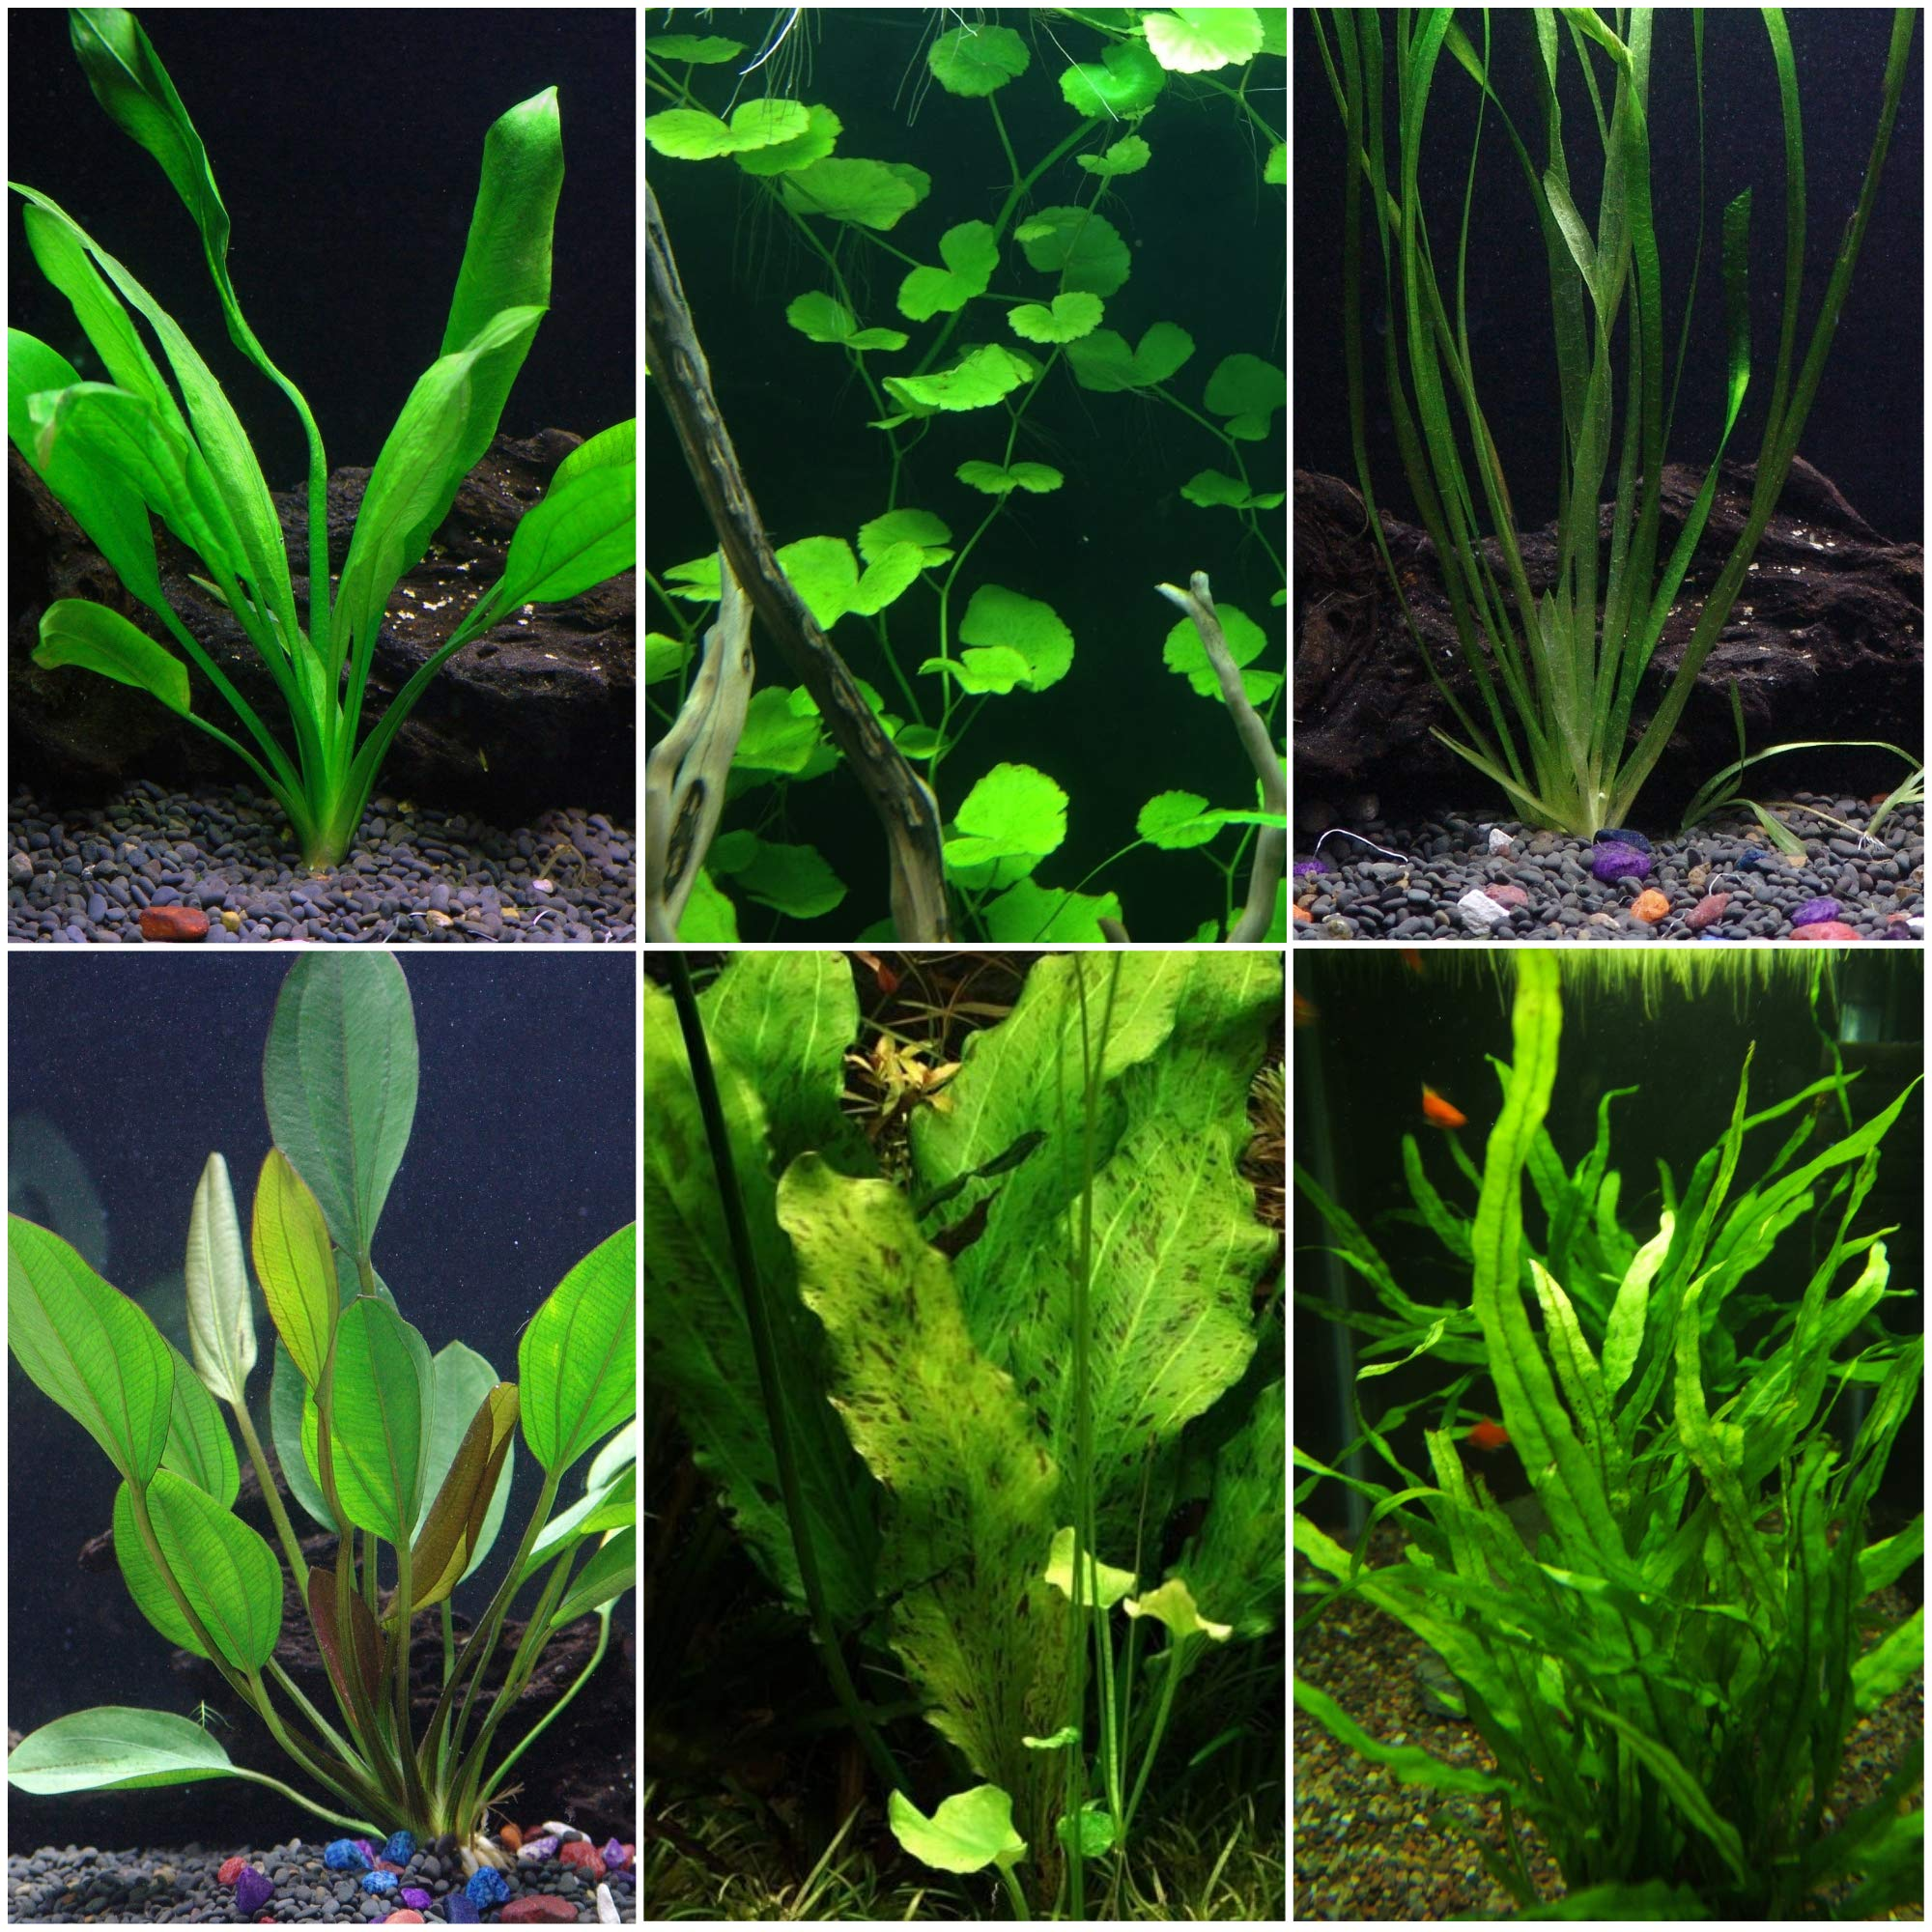 Discus-Warm Water Aquarium Plant Bundle by AquaLeaf Aquatics